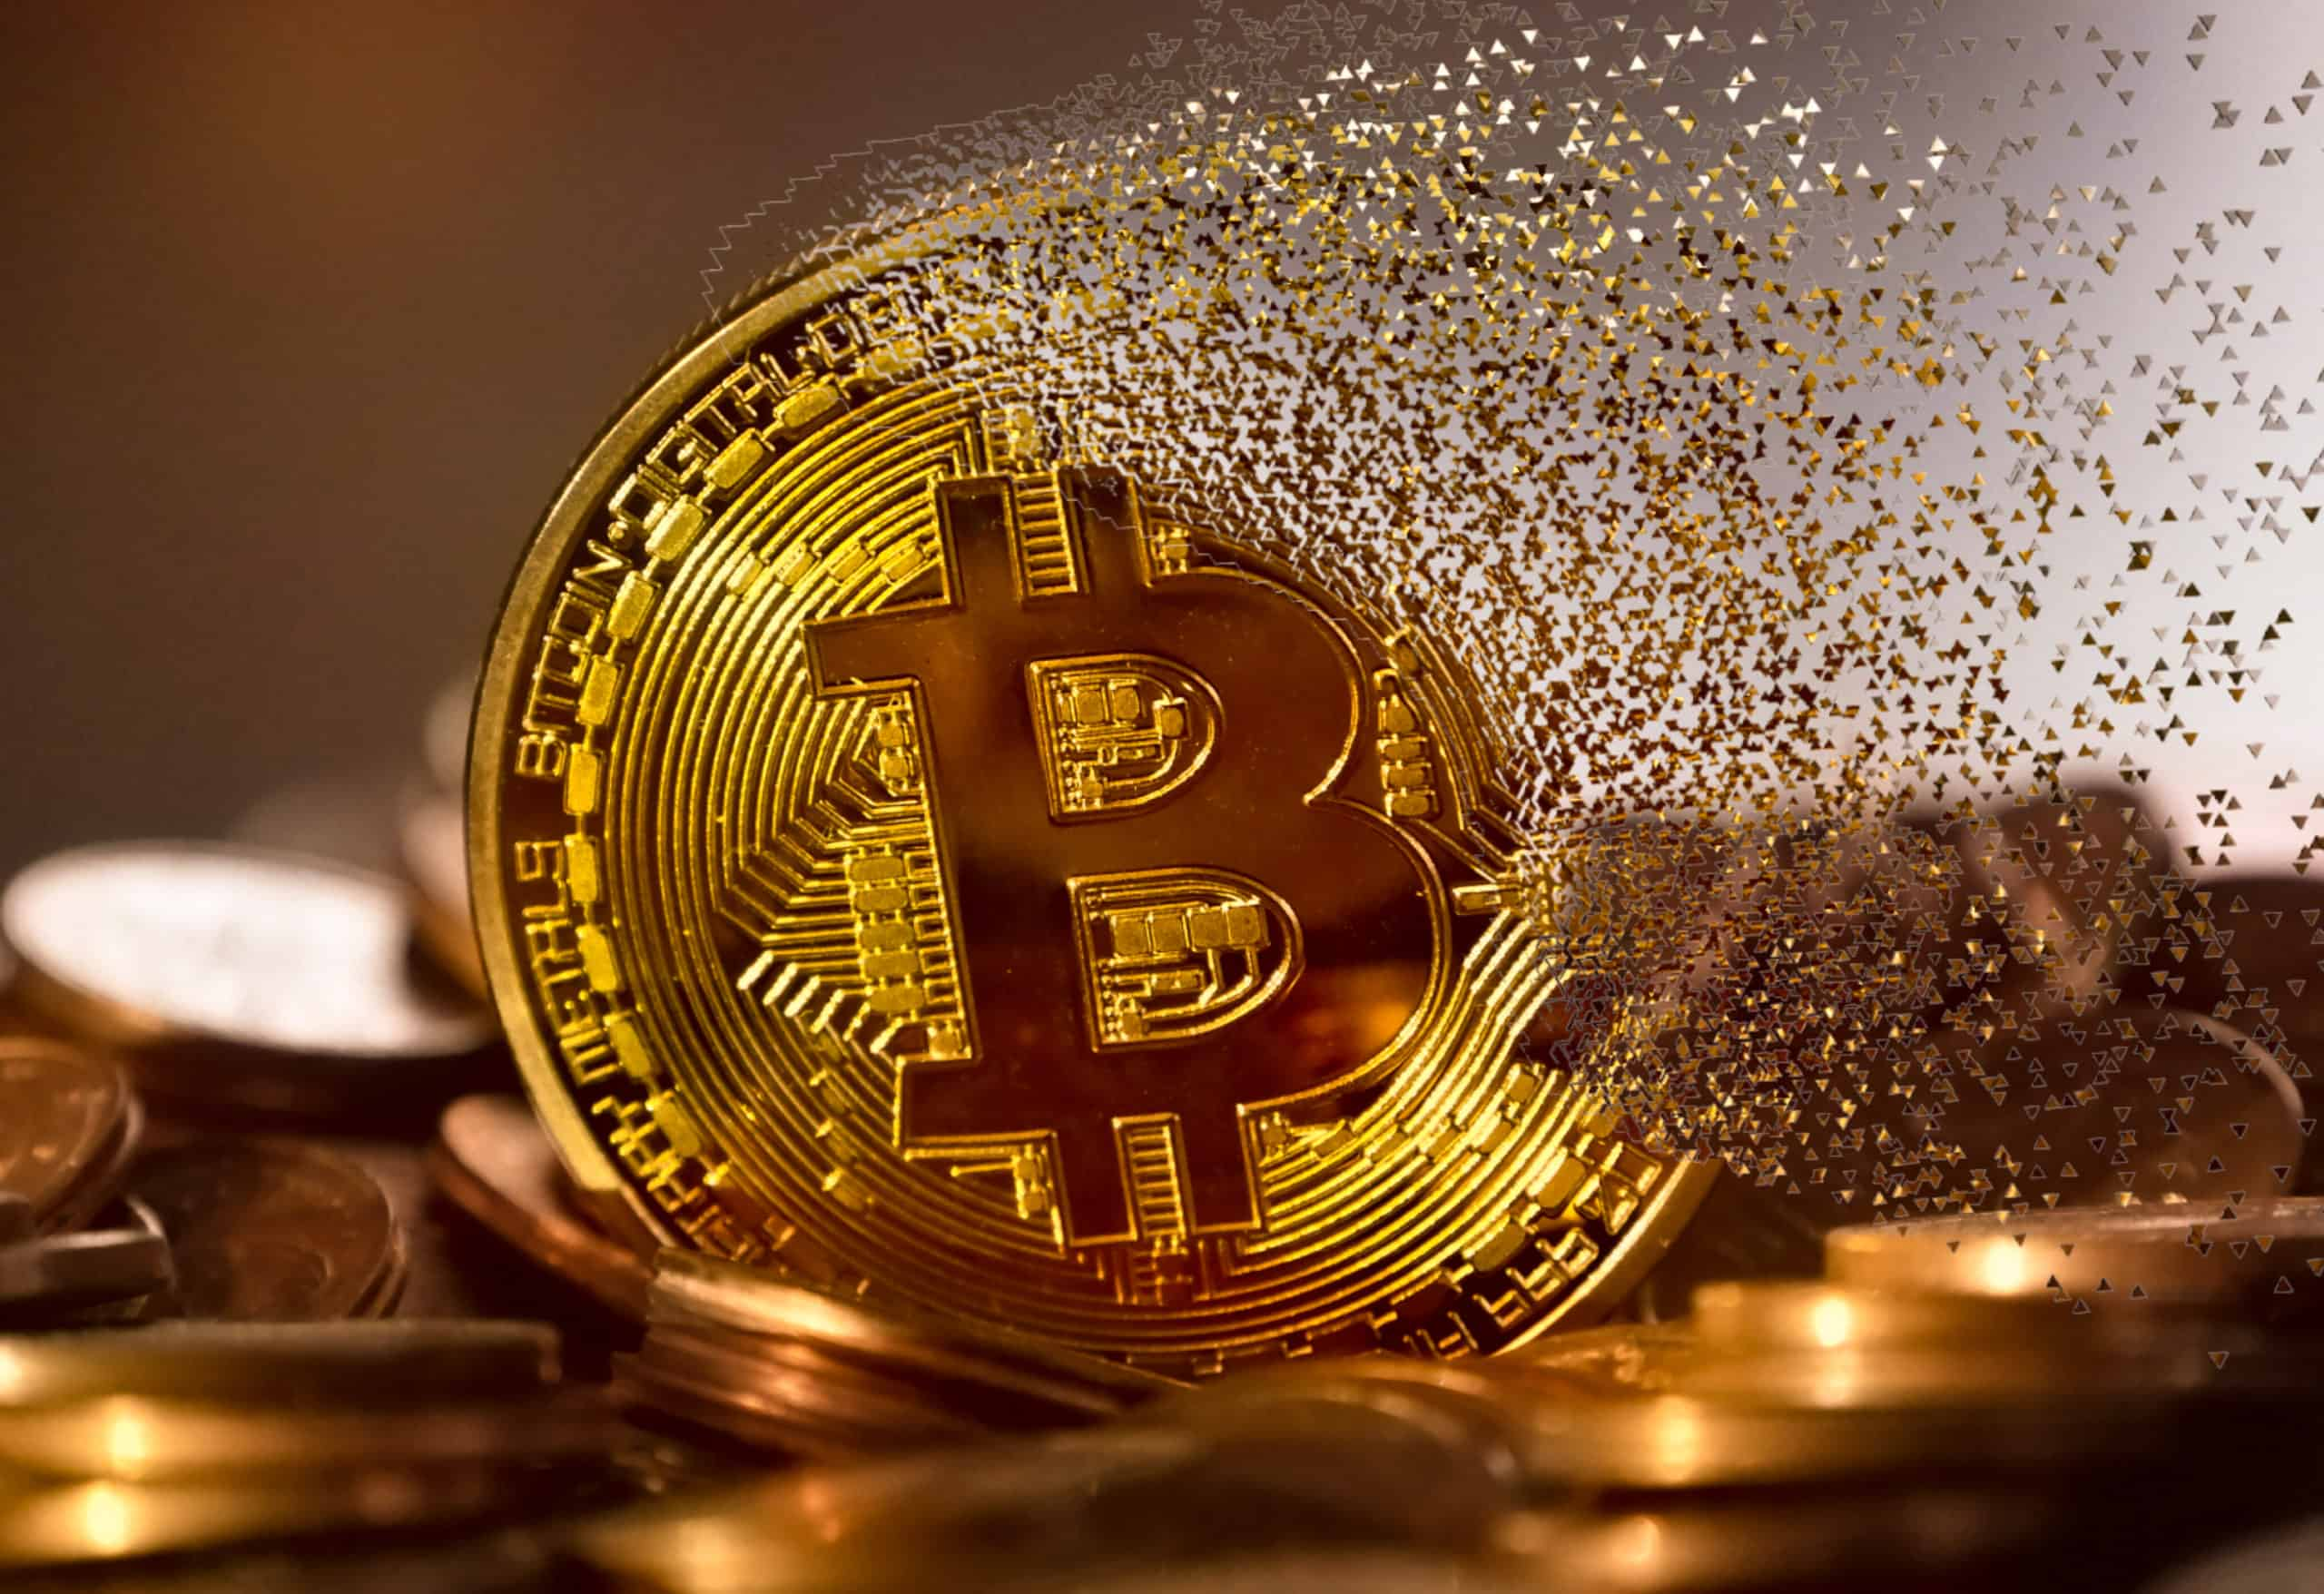 bitcoin money decentralized virtual coin currency 1435009 pxhere.com scaled